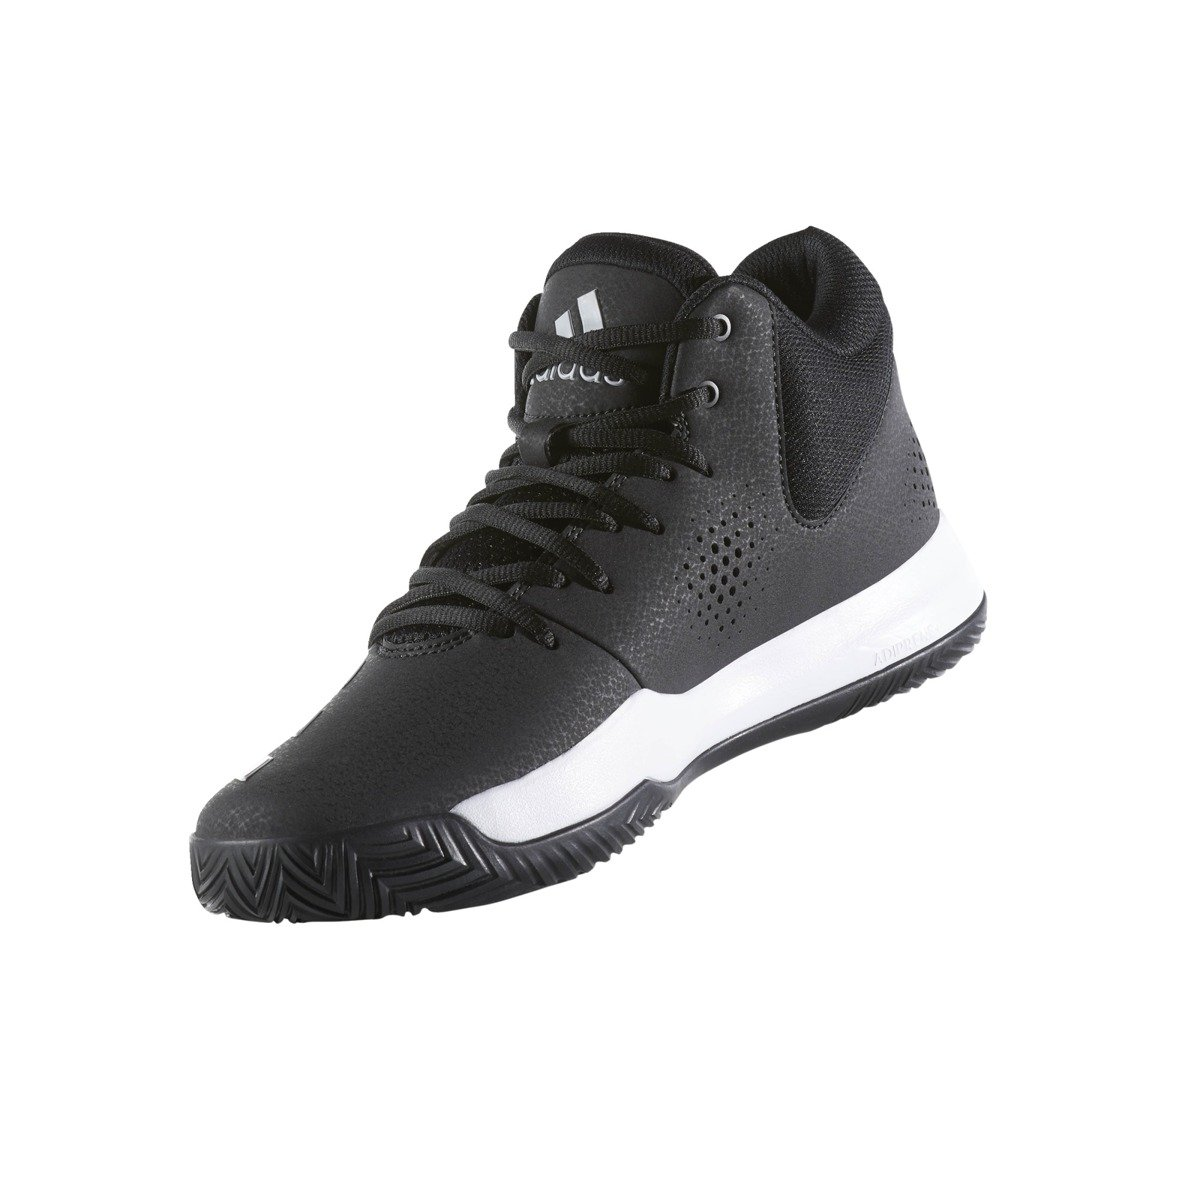 adidas basketball shoes 2017. adidas court fury 2017 shoes - by4188 basketball 8